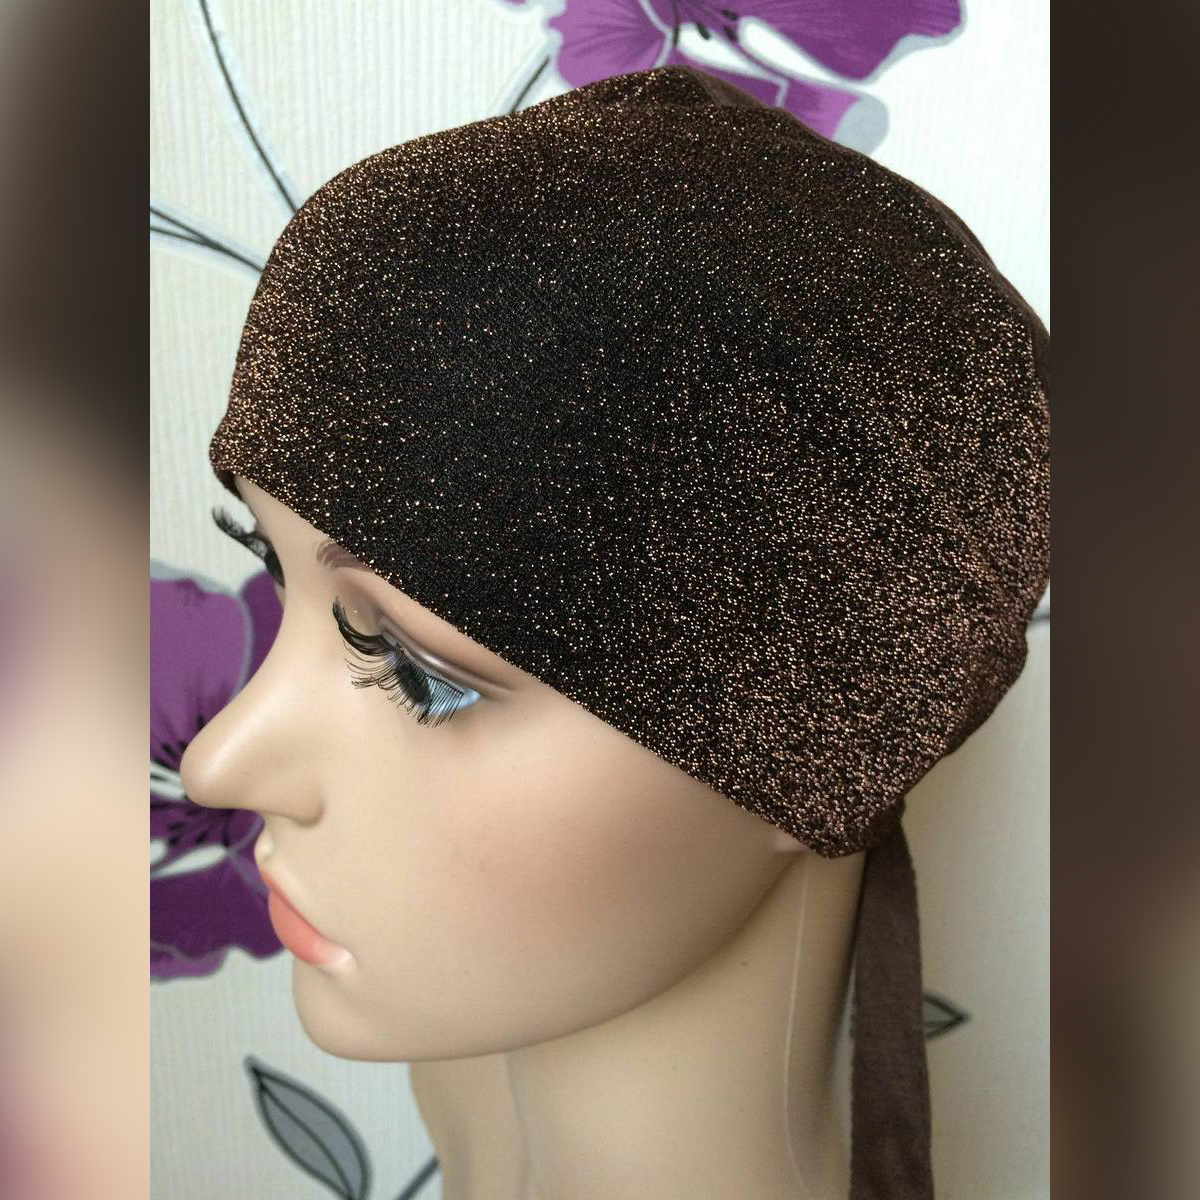 shimmer hijab /  glitter Headscarf / Inner Hijab Caps Wraps / Women Under Scarf selected colors available